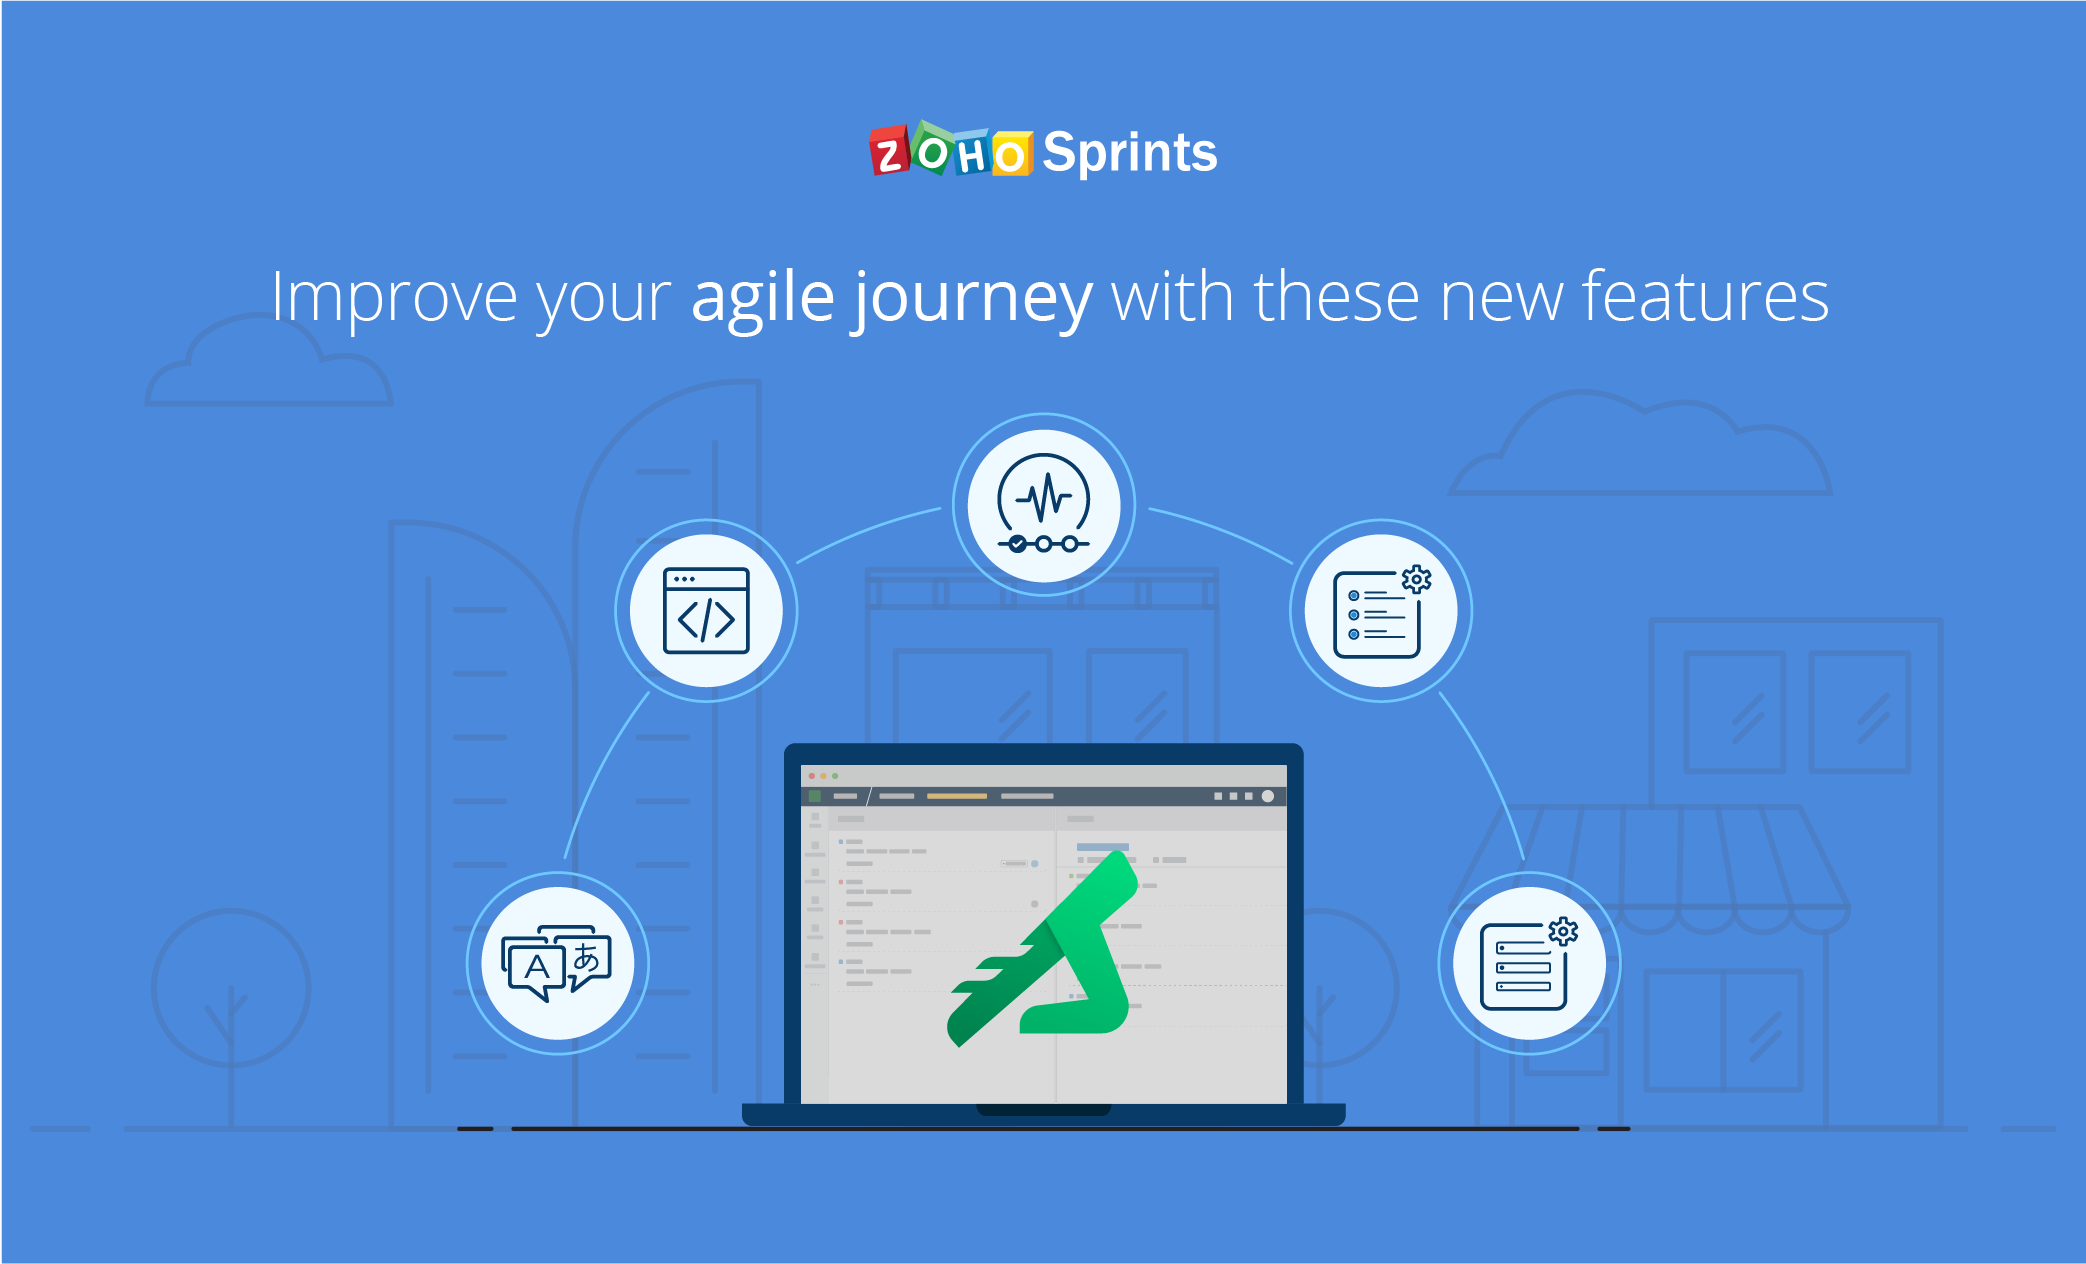 Explore our brand new features in Zoho Sprints